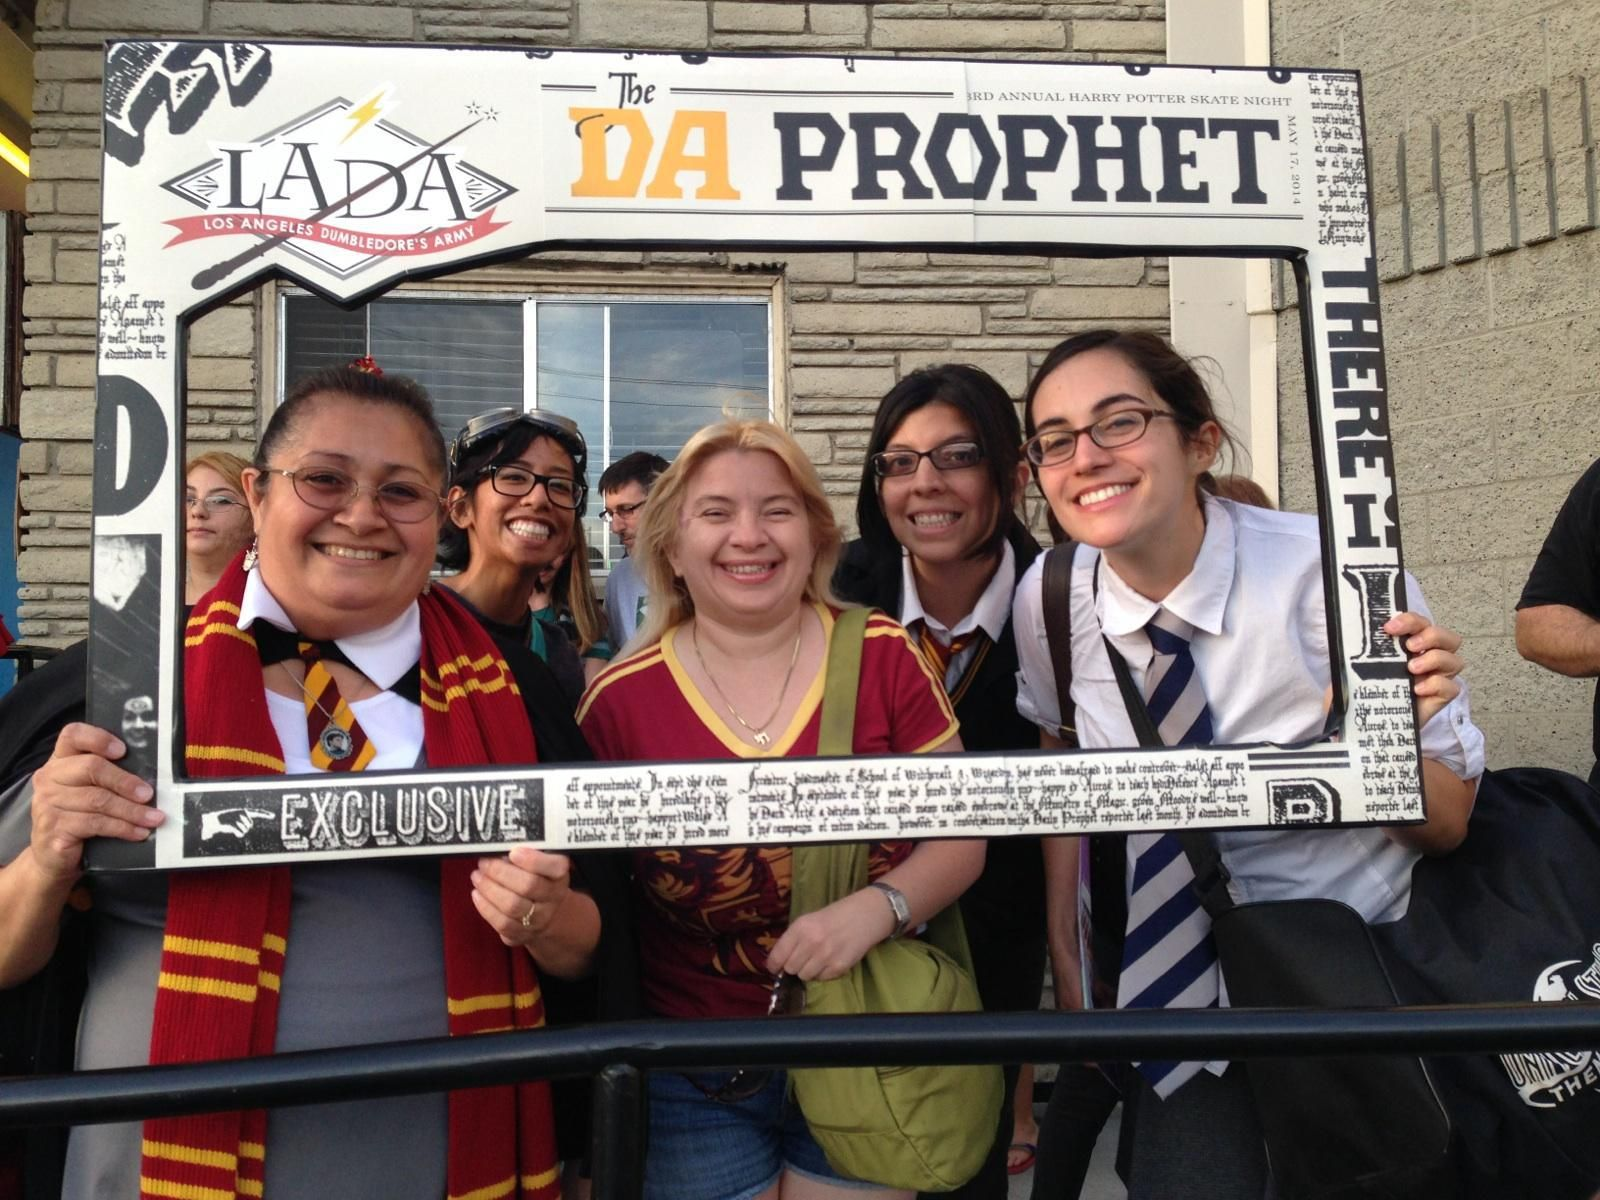 The Los Angeles Dumbledore's Army (Harry Potter Fans)!